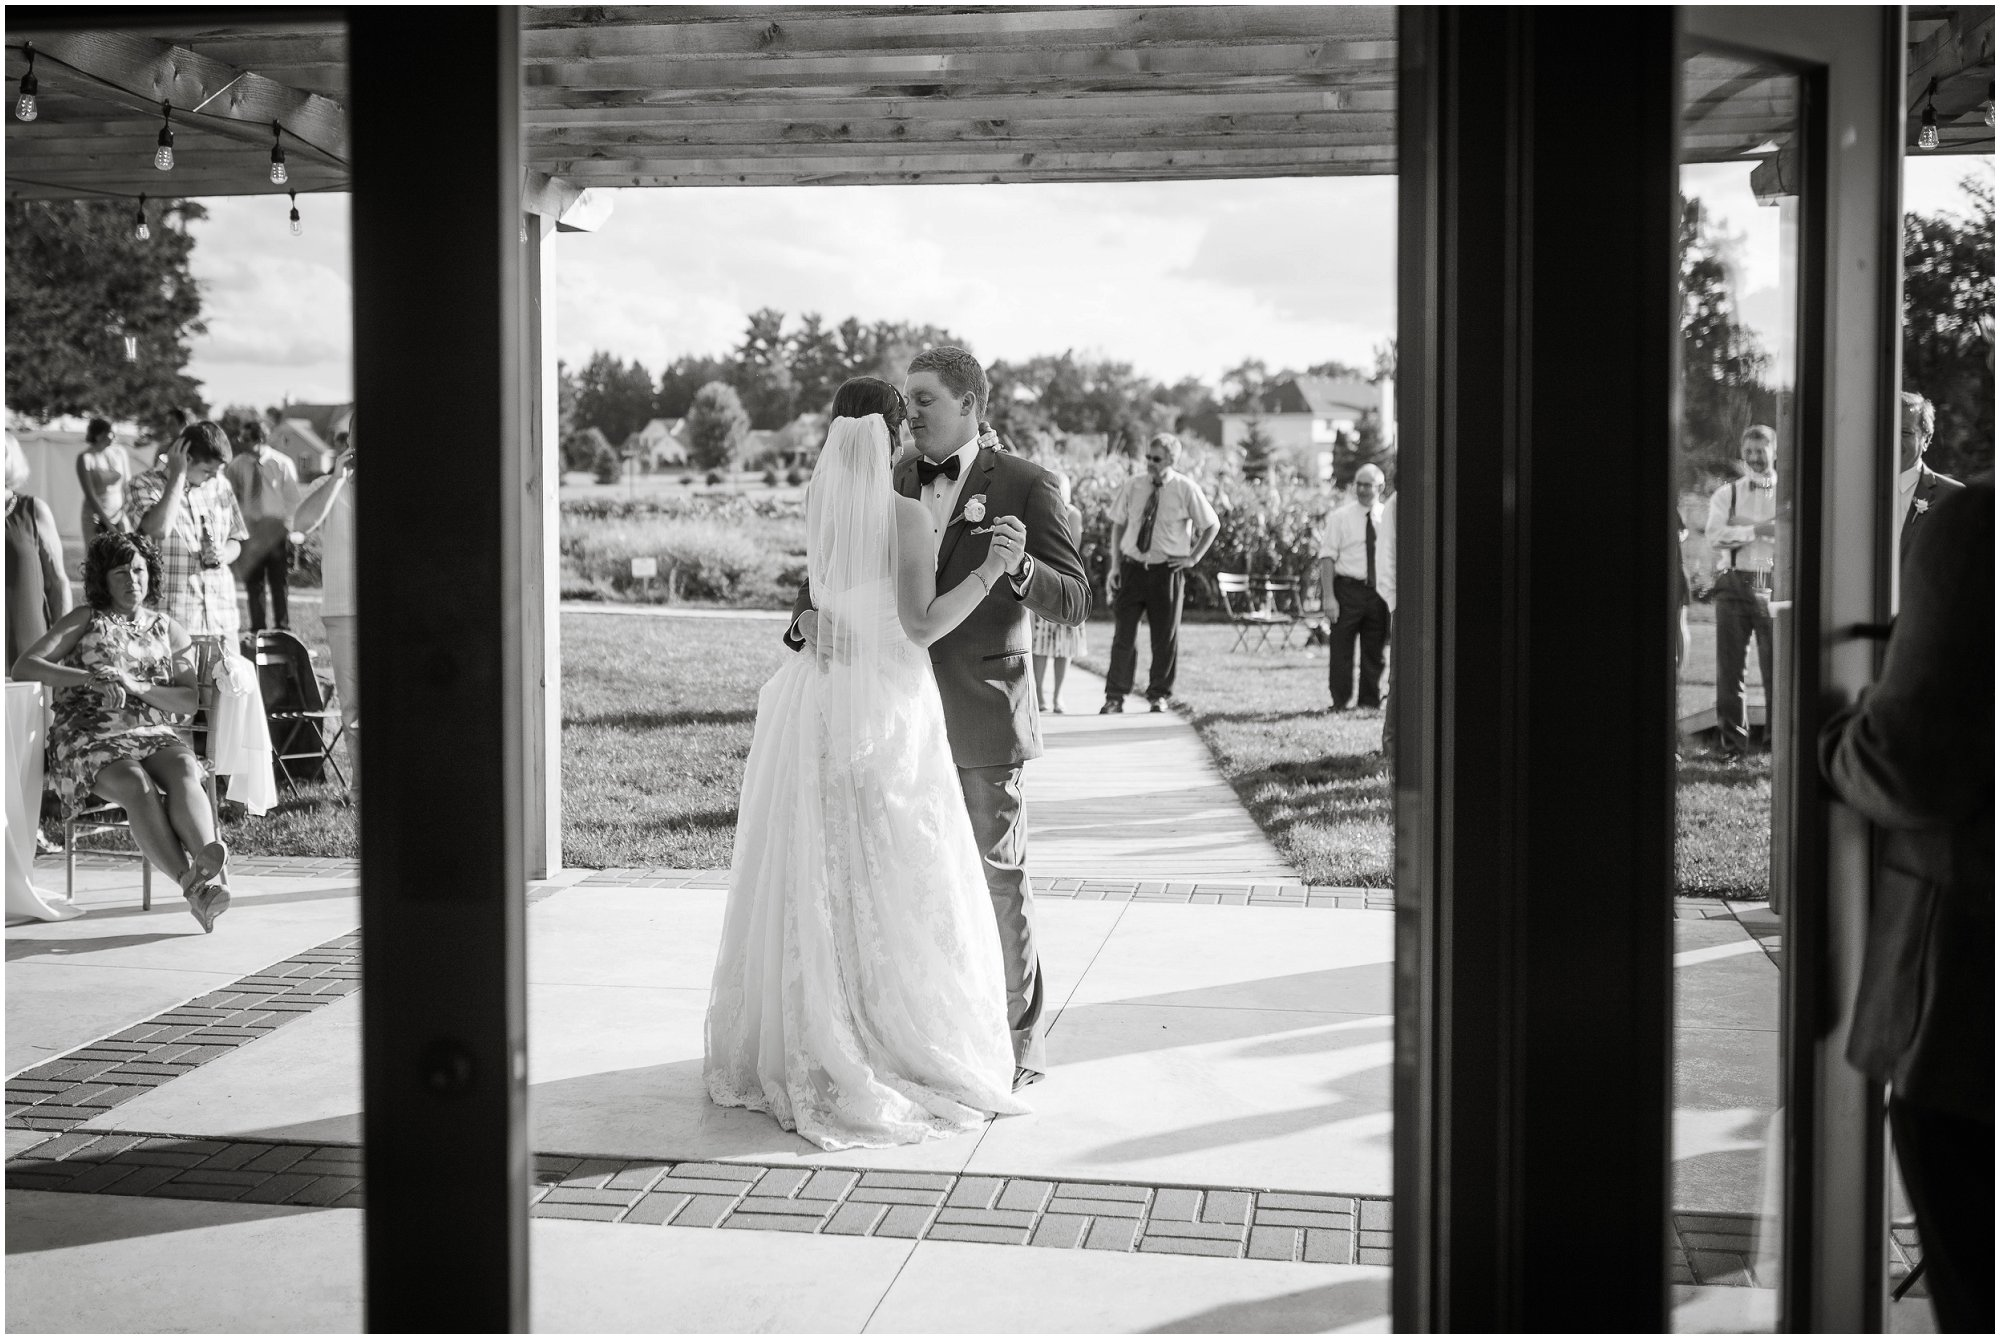 cornman-farms-wedding-michigan-barn-wedding_0987.jpg